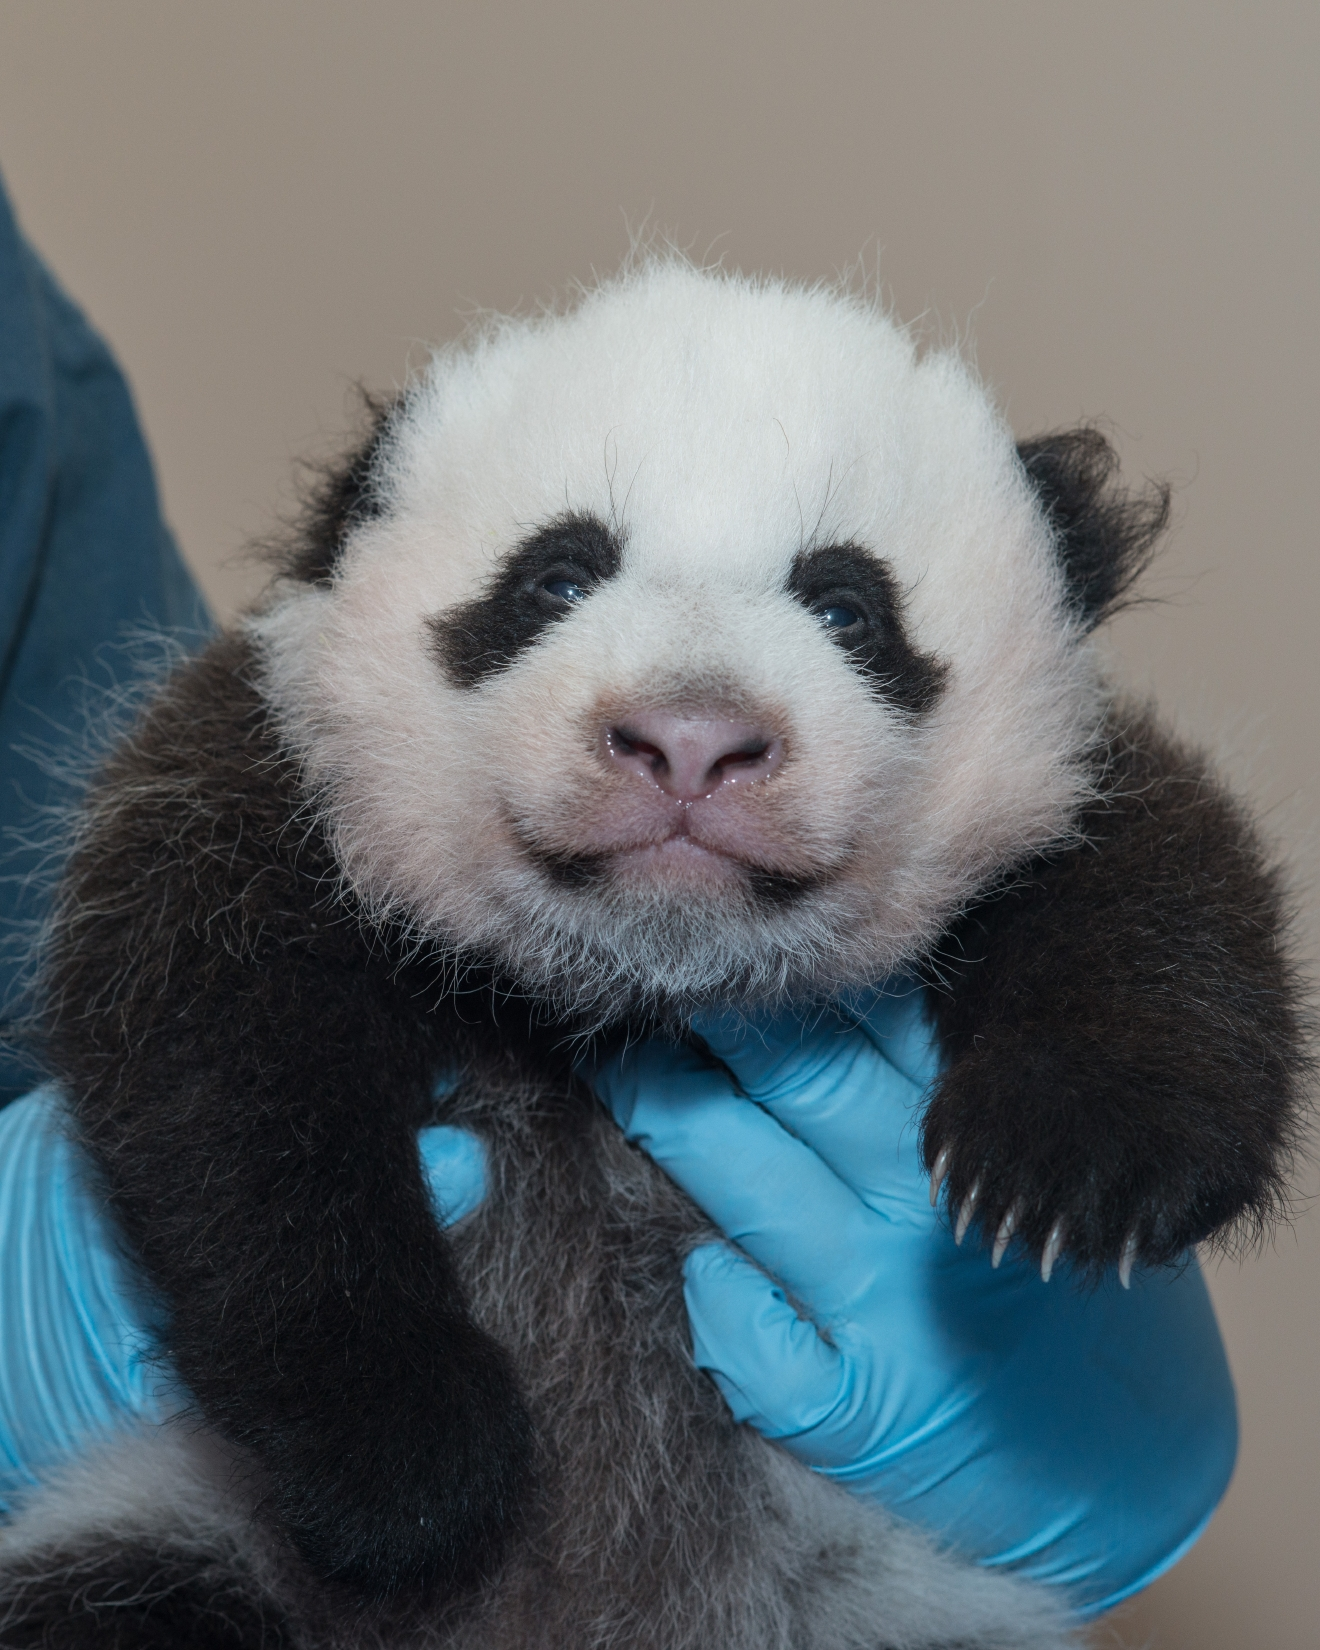 If there's anything that will unite all of D.C. it's our love for these fuzzy, tumbling, bamboo-loving little cuties! To celebrate the greatest national day we have heard of yet -- and yes, that's totally an objective opinion -- we rounded up a few of our favorite photos we've amassed of D.C.'s First (Panda) Family: Tian Tian, Mei Xiang, Bao Bao (WE MISS YOU!) and little Bei Bei! We hear there could be another panda cub in the future (Mei Xiang was artificially inseminated earlier this month), so stay tuned and enjoy! (Image: Courtesy Abby Wood/Smithsonian's National Zoo)